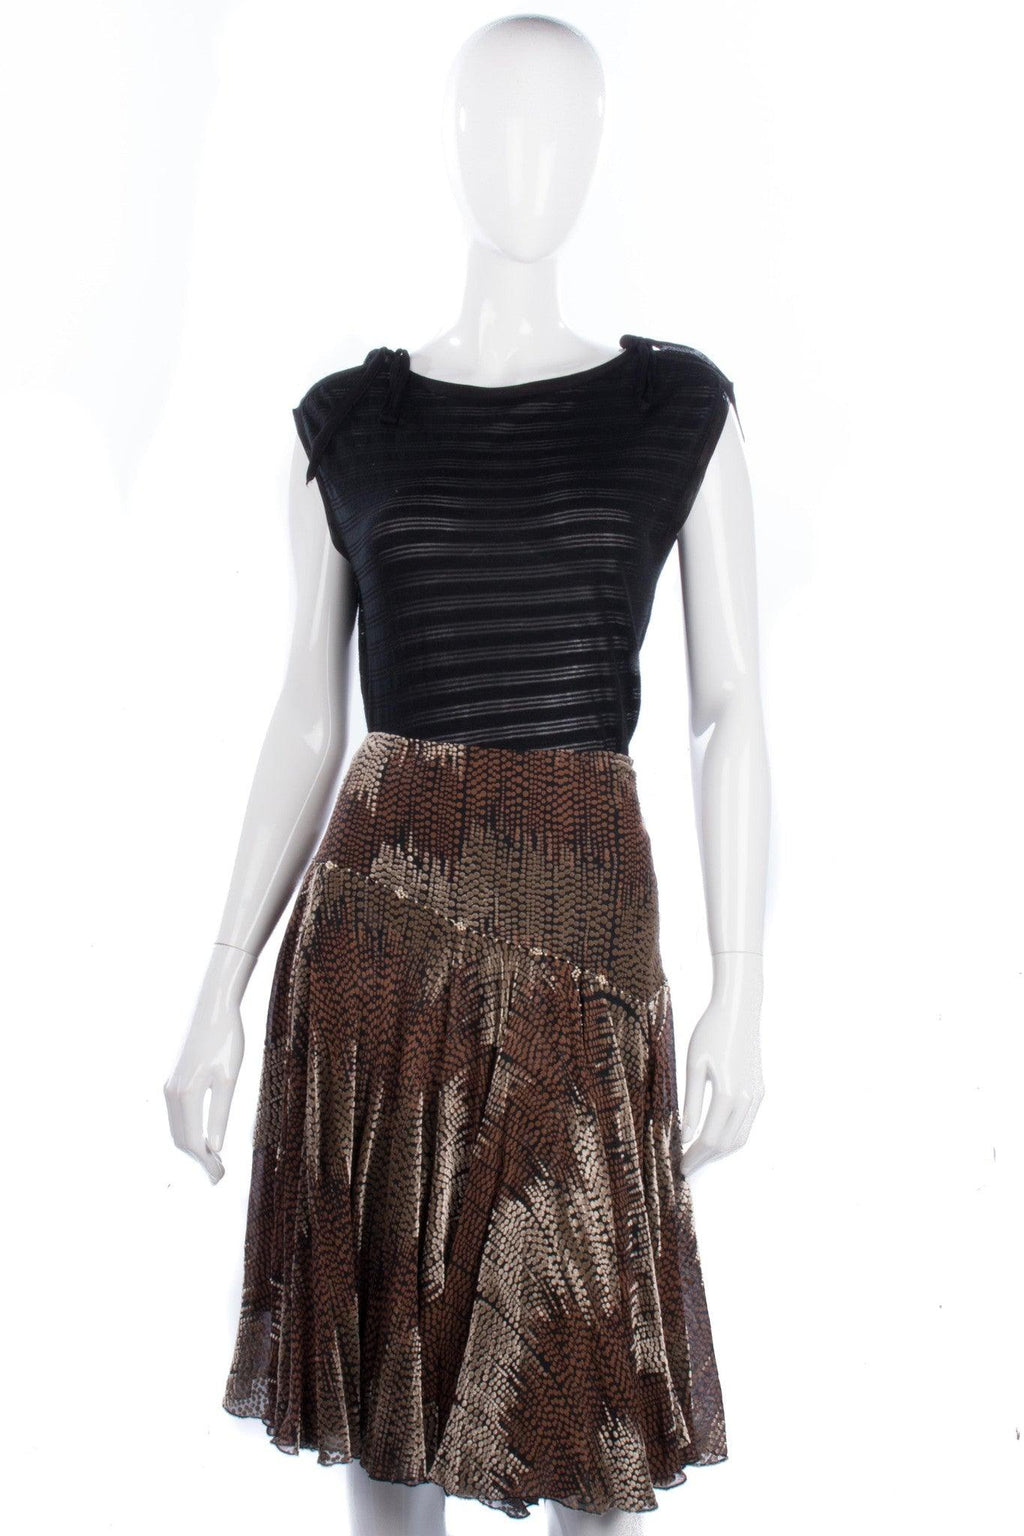 Fenn Wright Manson Silk Devore Skirt Black and Brown Spots UK12